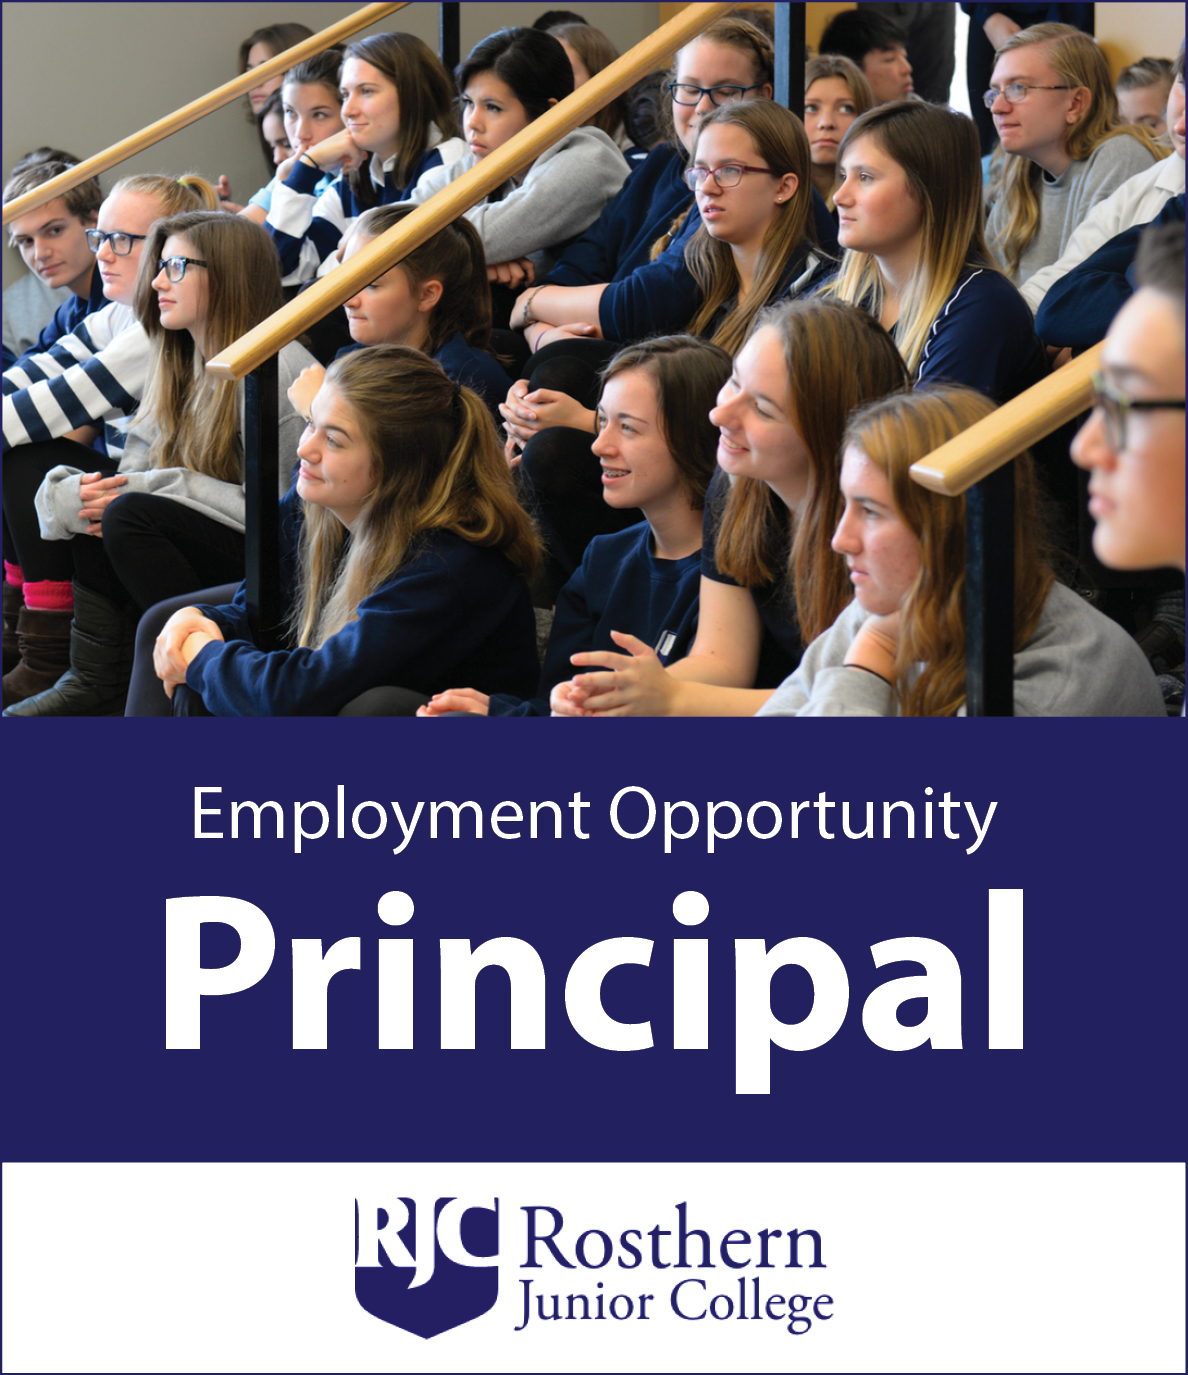 RJC employment ad for principal